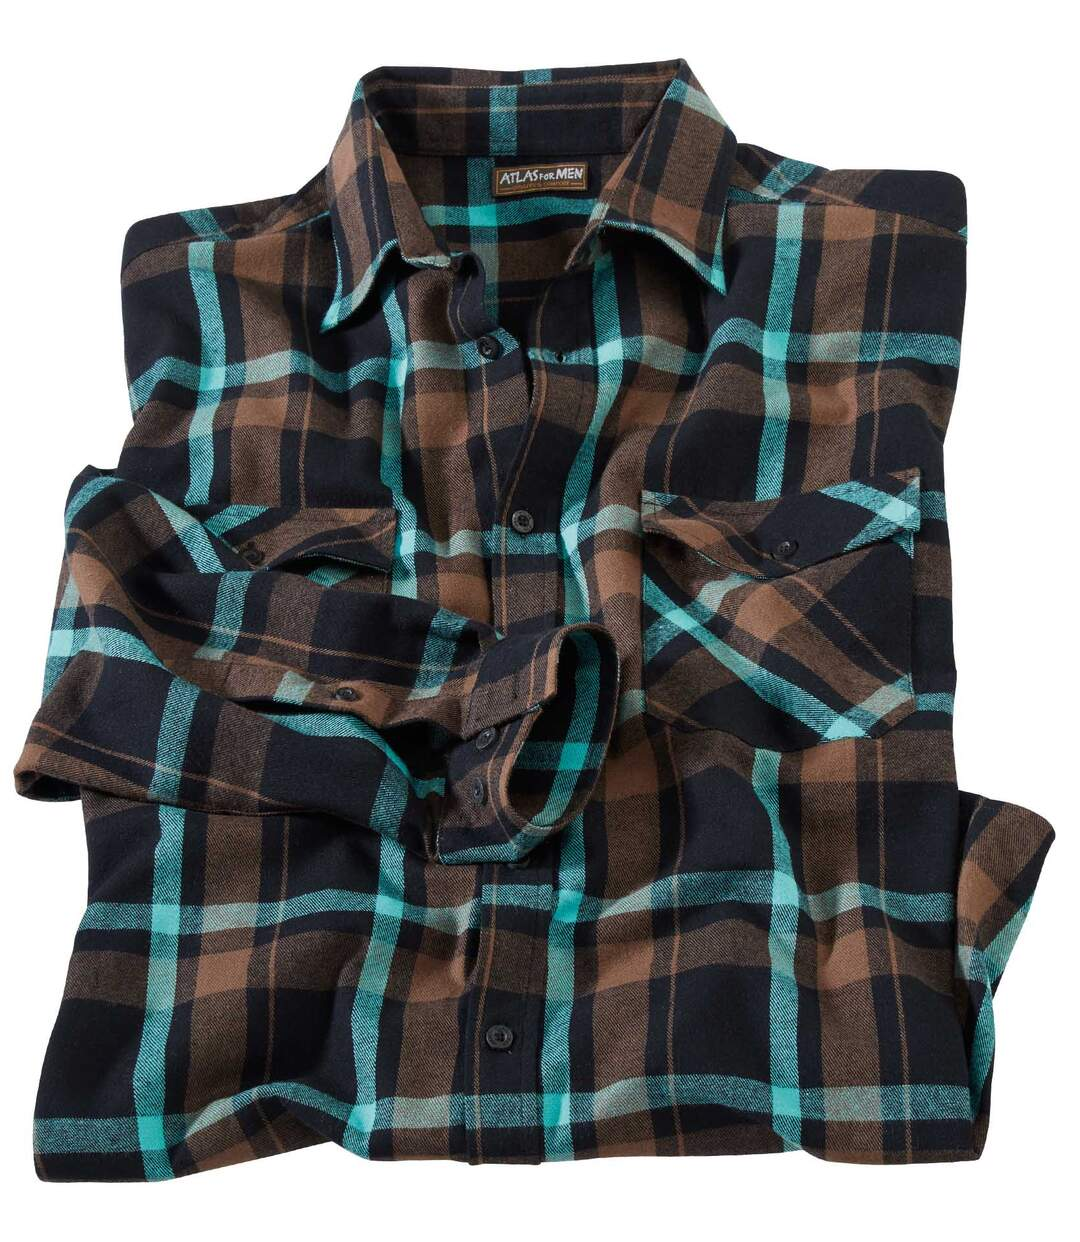 Men's Checked Flannel Shirt - Black Turquoise